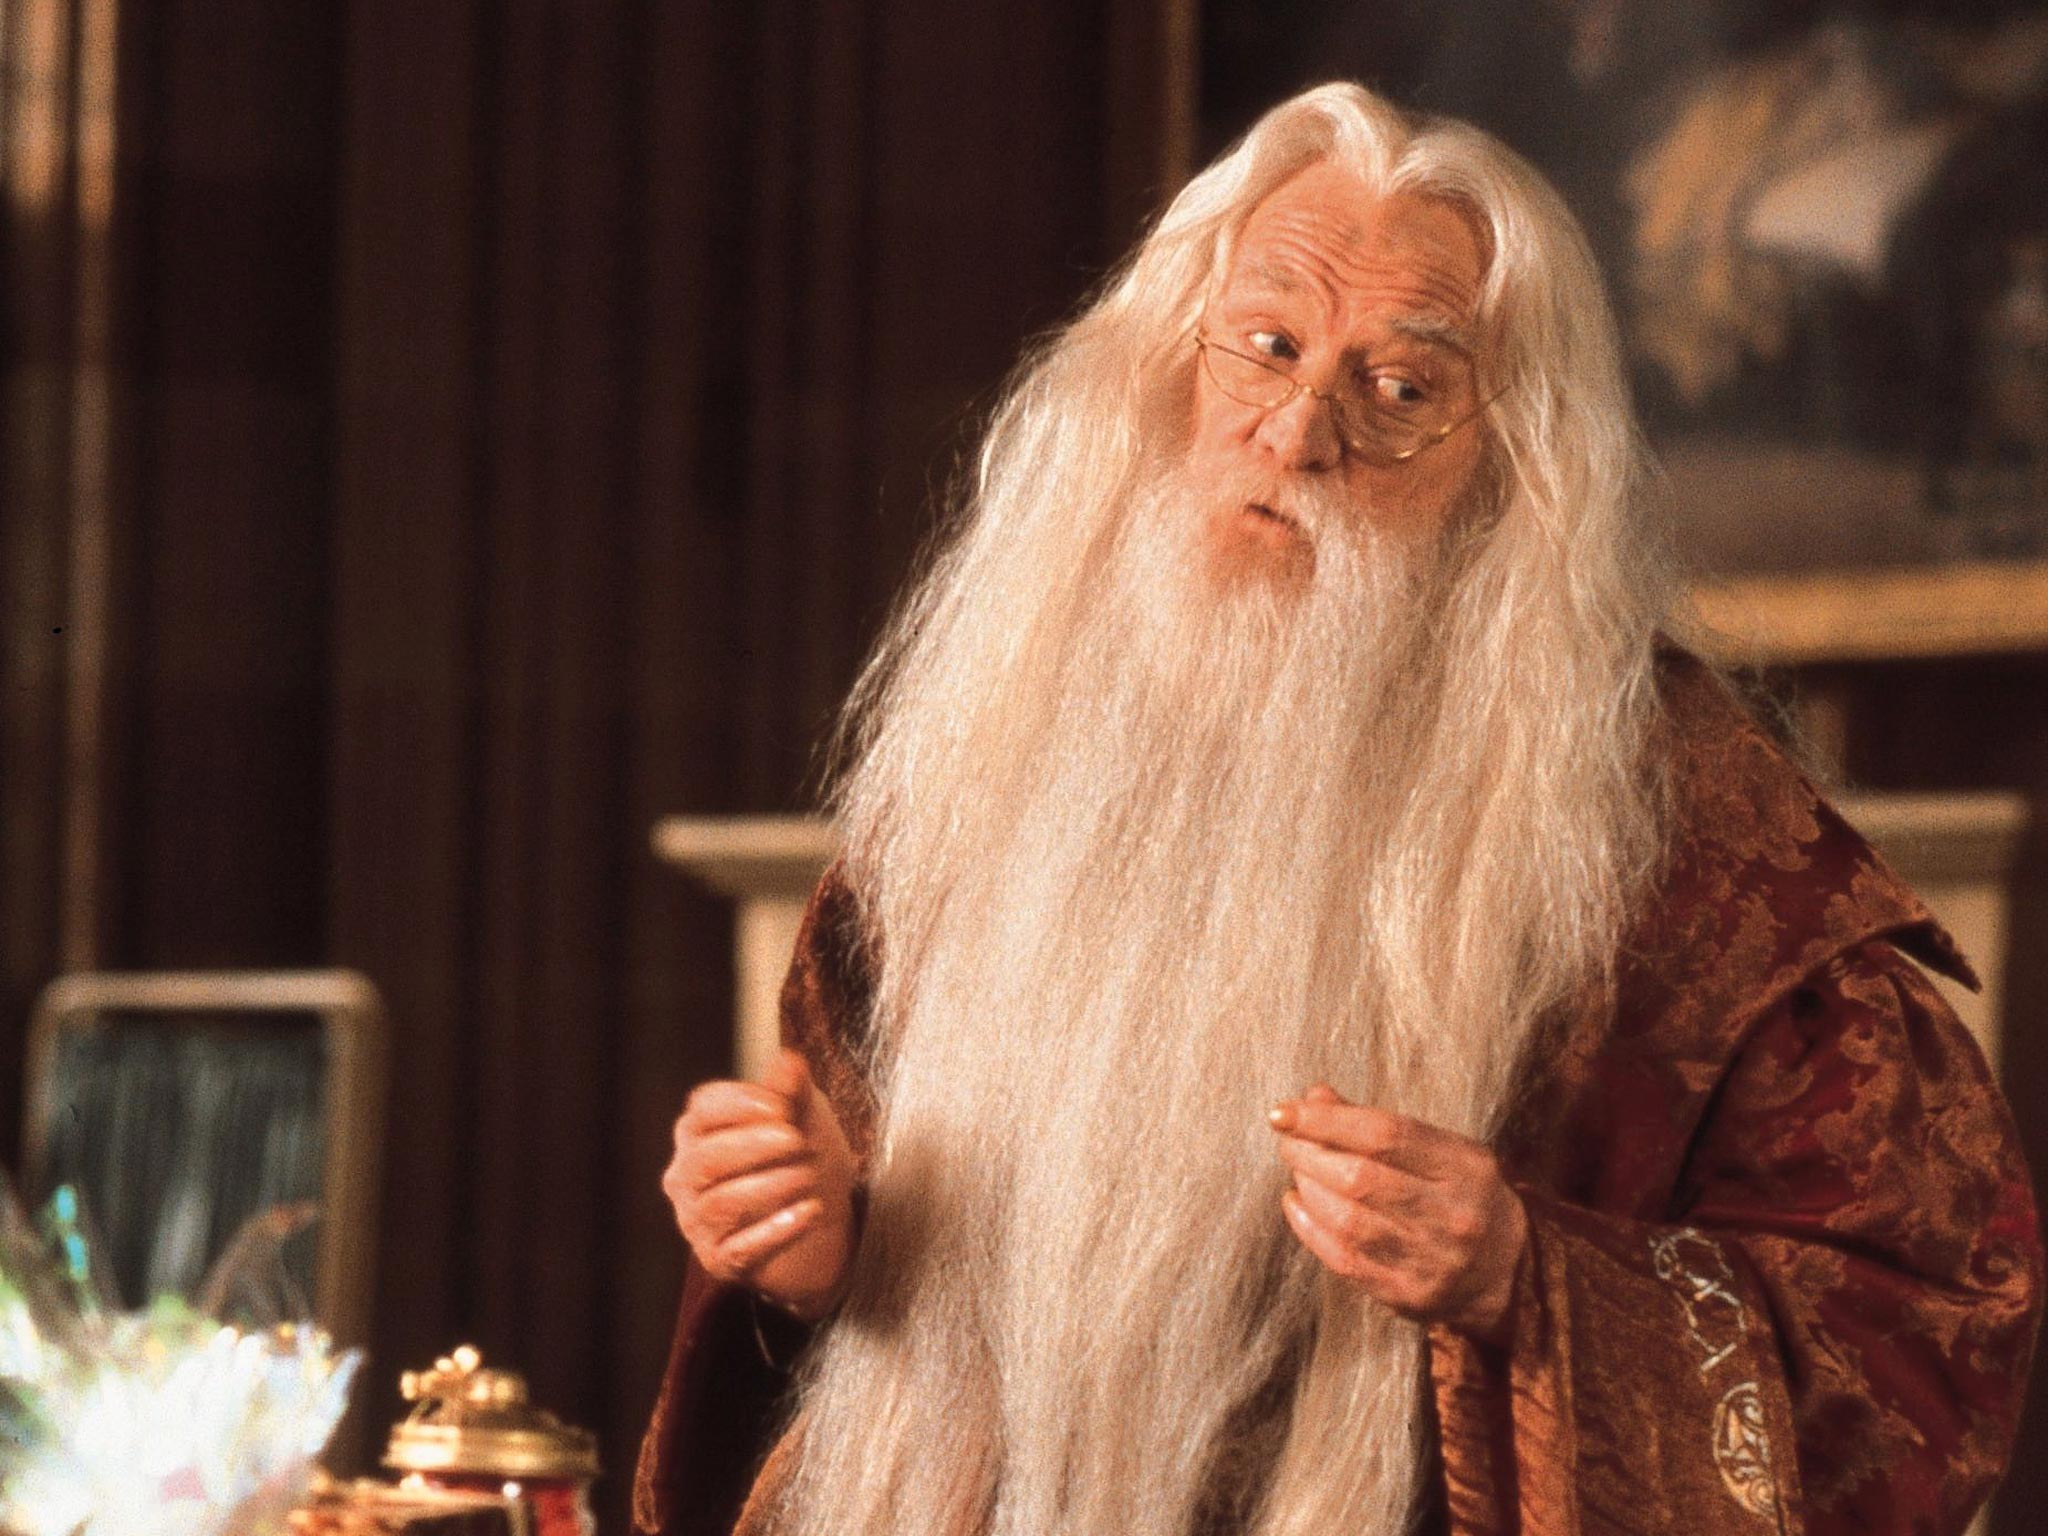 Things You Did Not Know About Albus Dumbledore